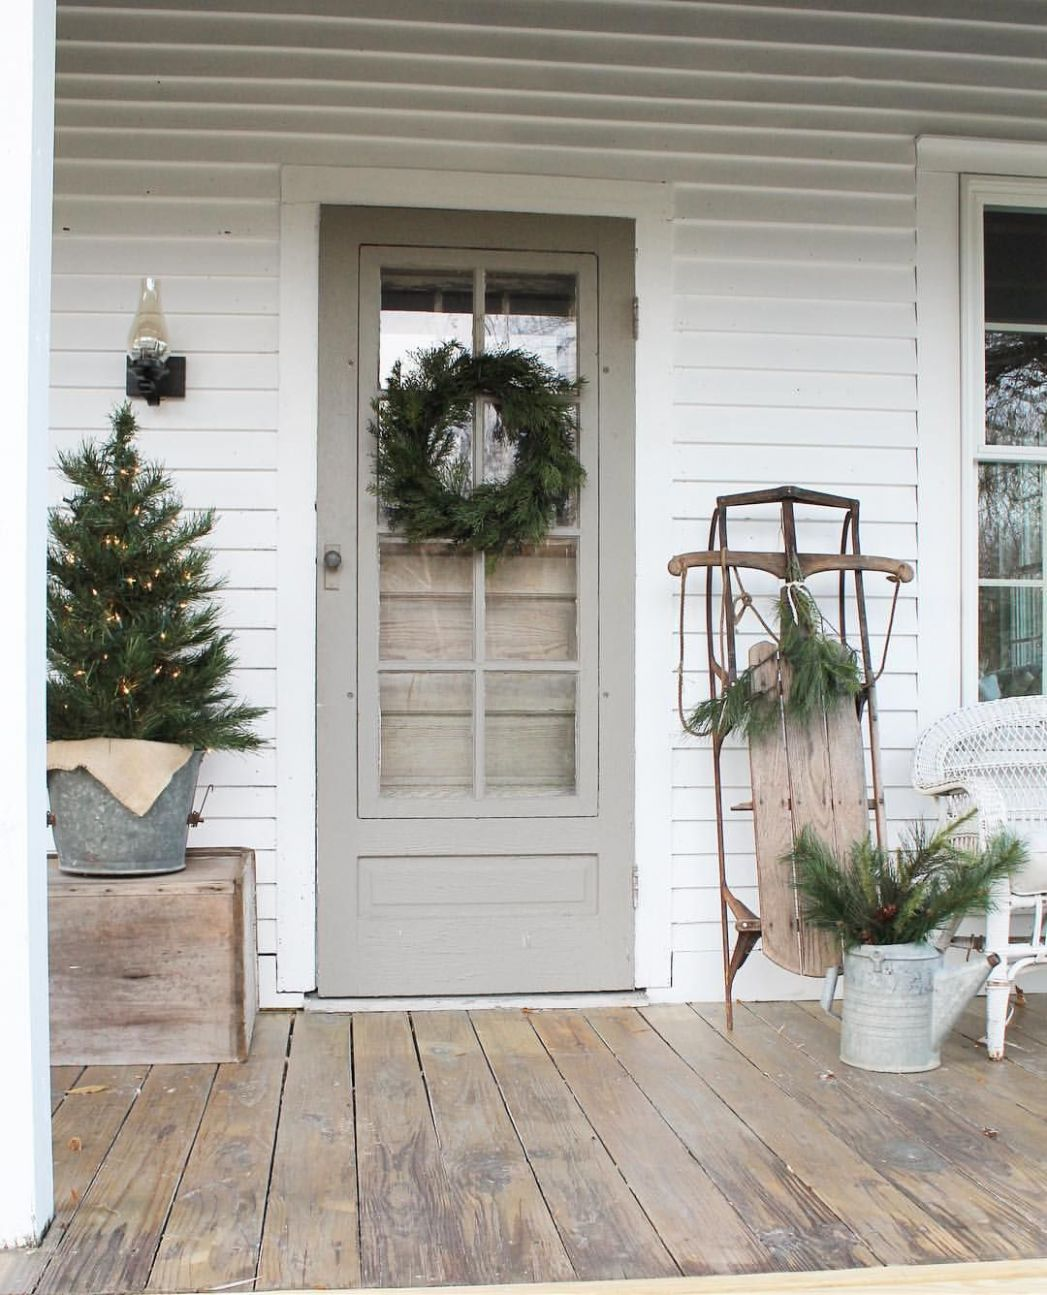 Christmas porch decor image by Christy Whitehead-Snyder on ..